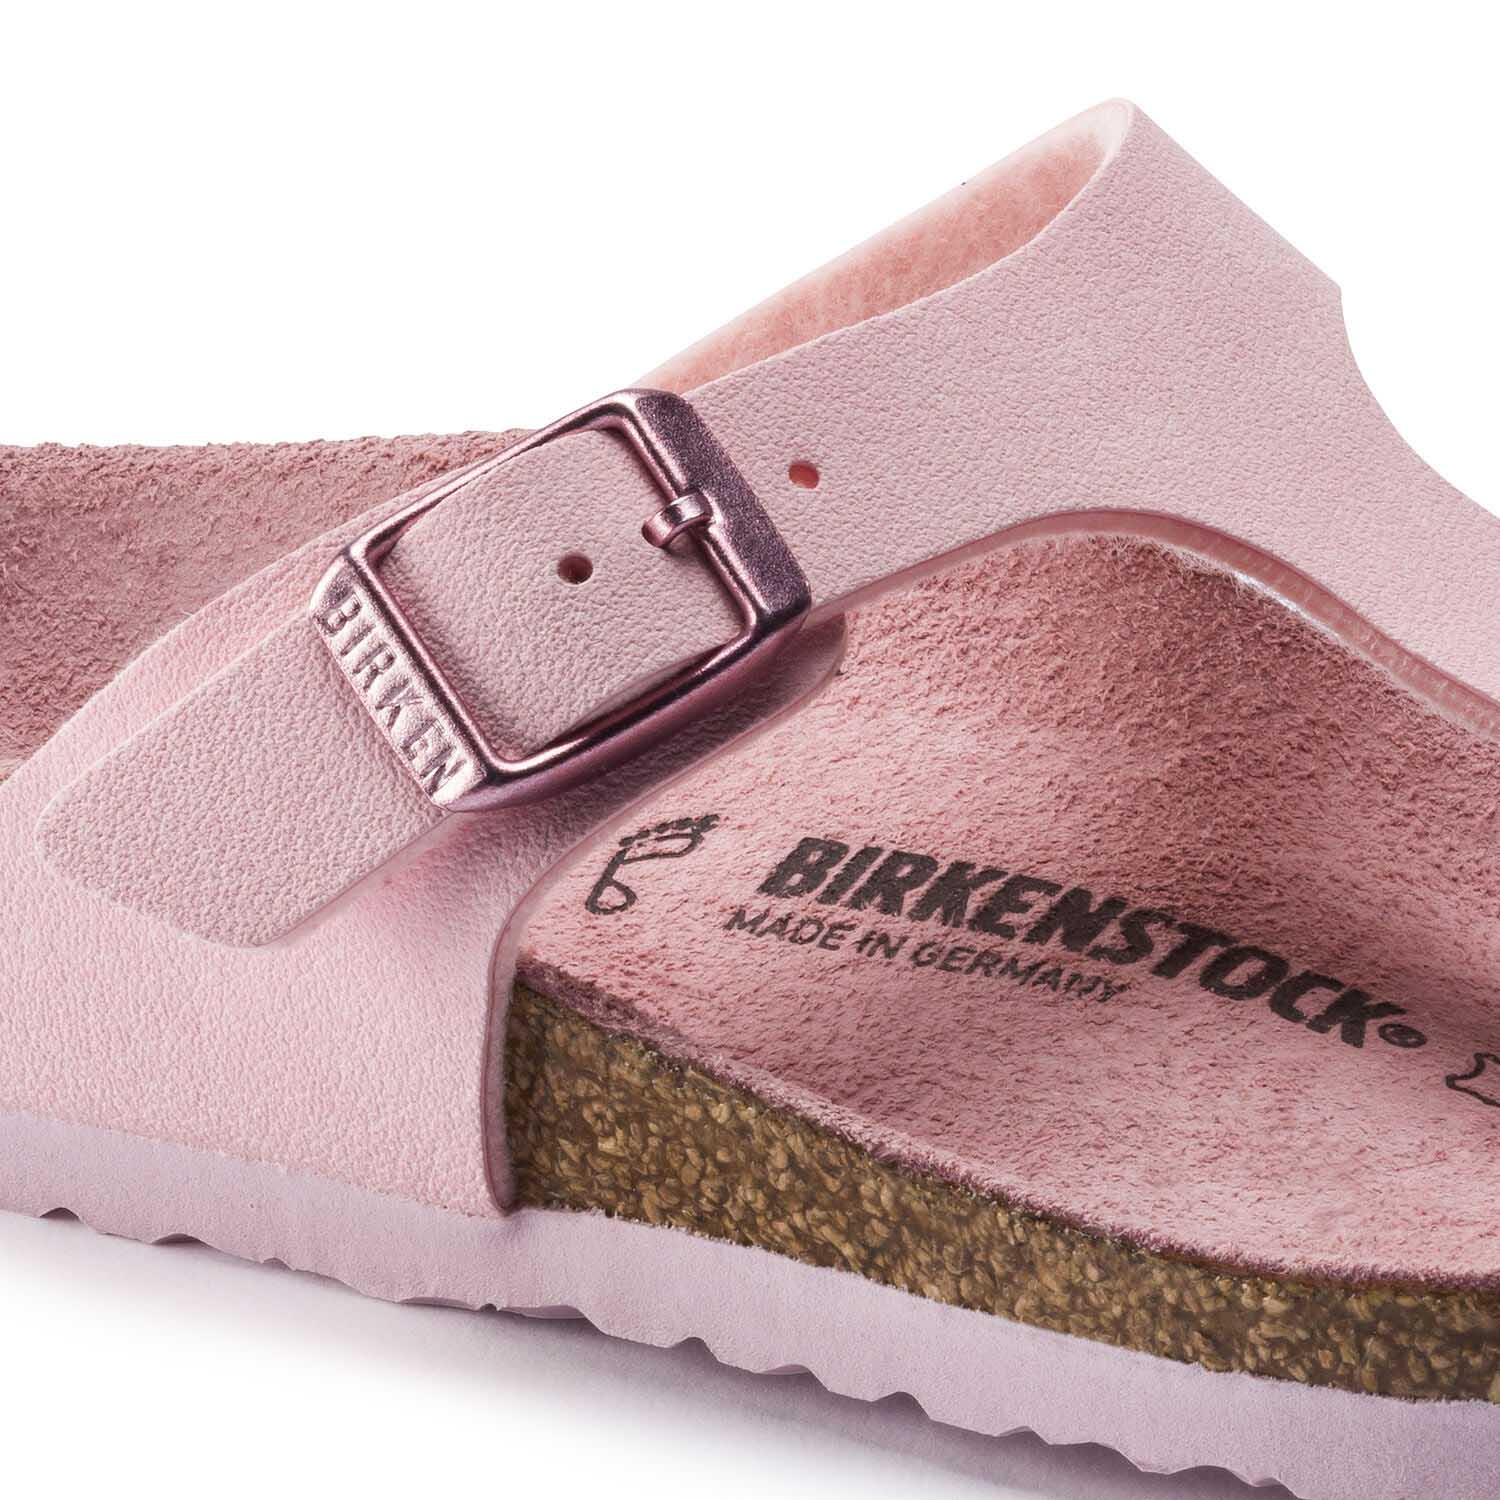 Birkenstock Gizeh Kids BF Nubuck Rose Narrow